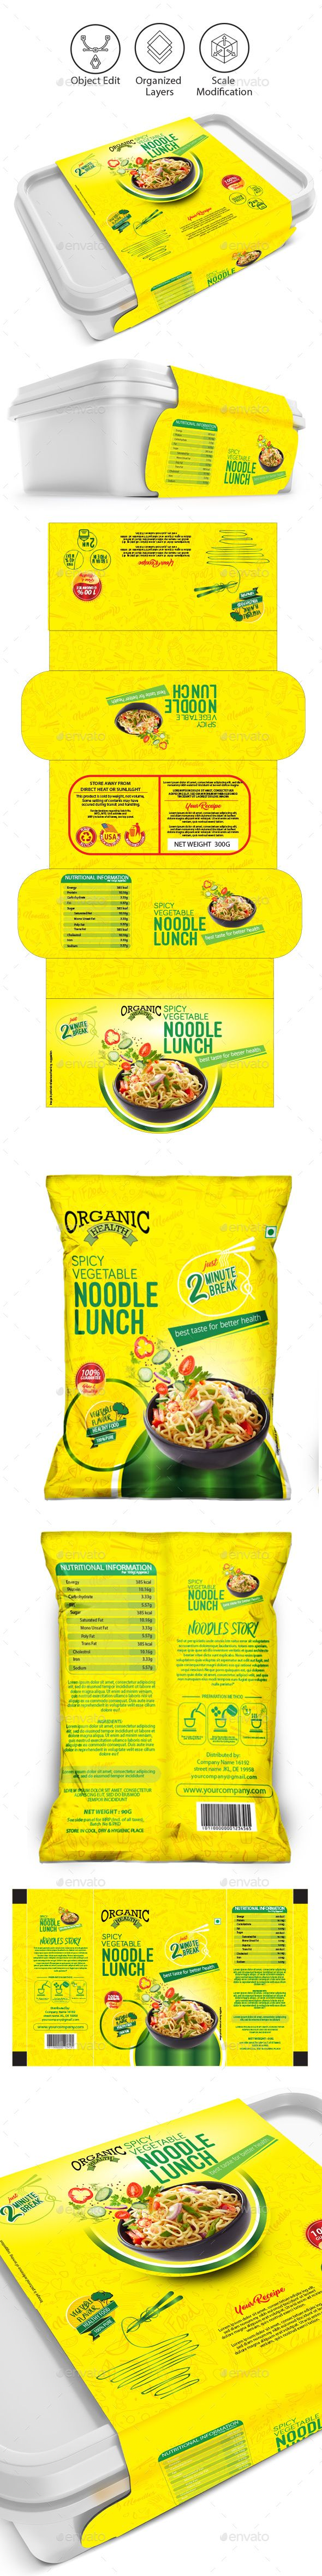 Noodles packaging templates - #Packaging Print #Templates Download here: https://graphicriver.net/item/noodles-packaging-templates/19054129?ref=alena994